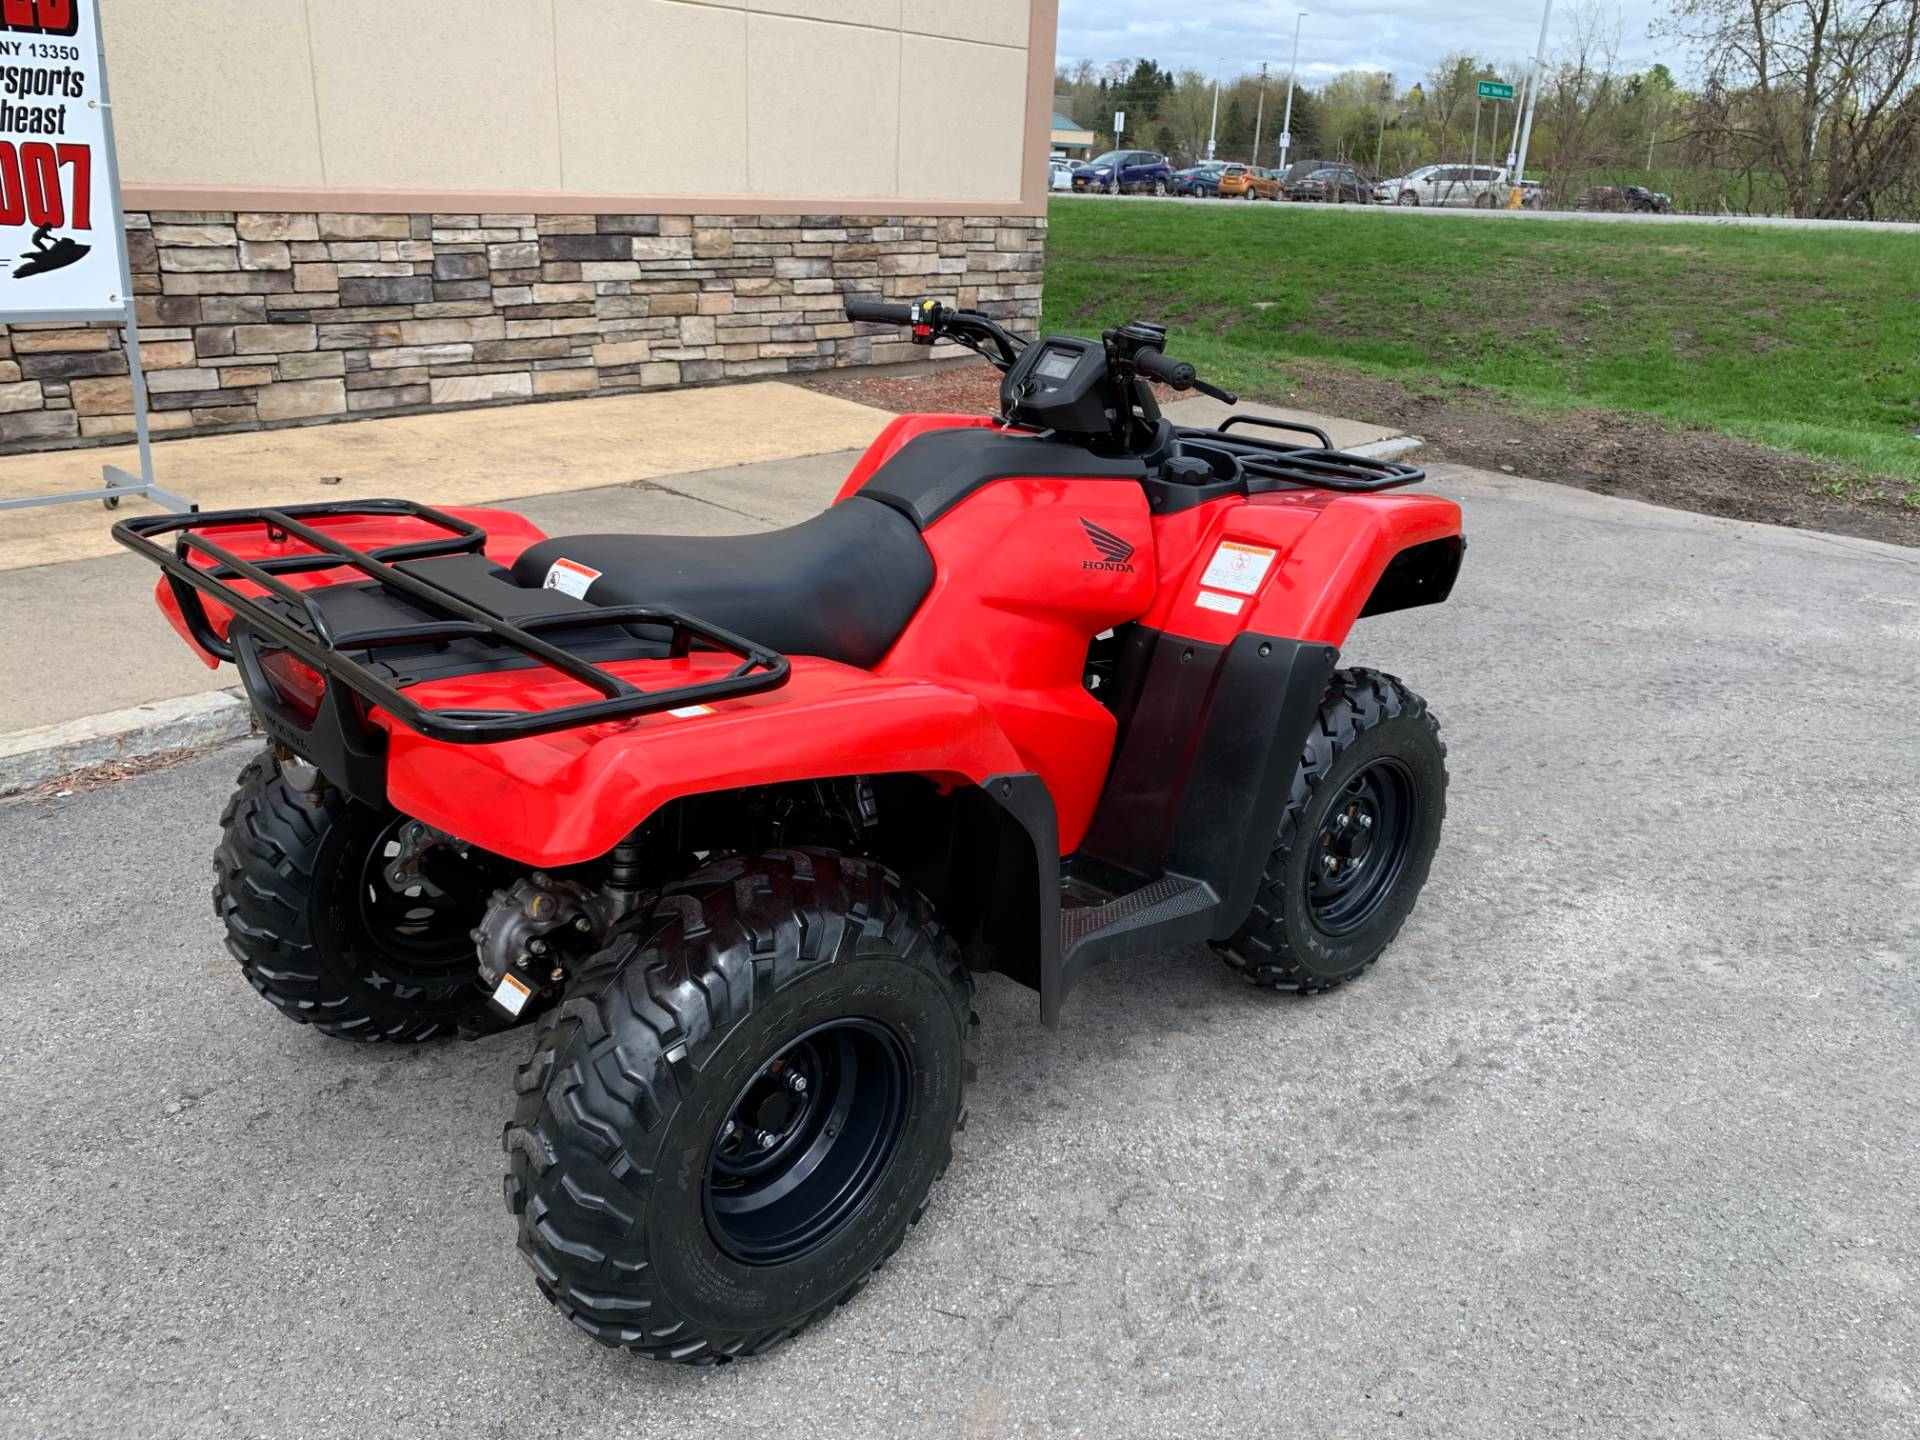 2018 Honda FourTrax Rancher 4x4 in Herkimer, New York - Photo 8